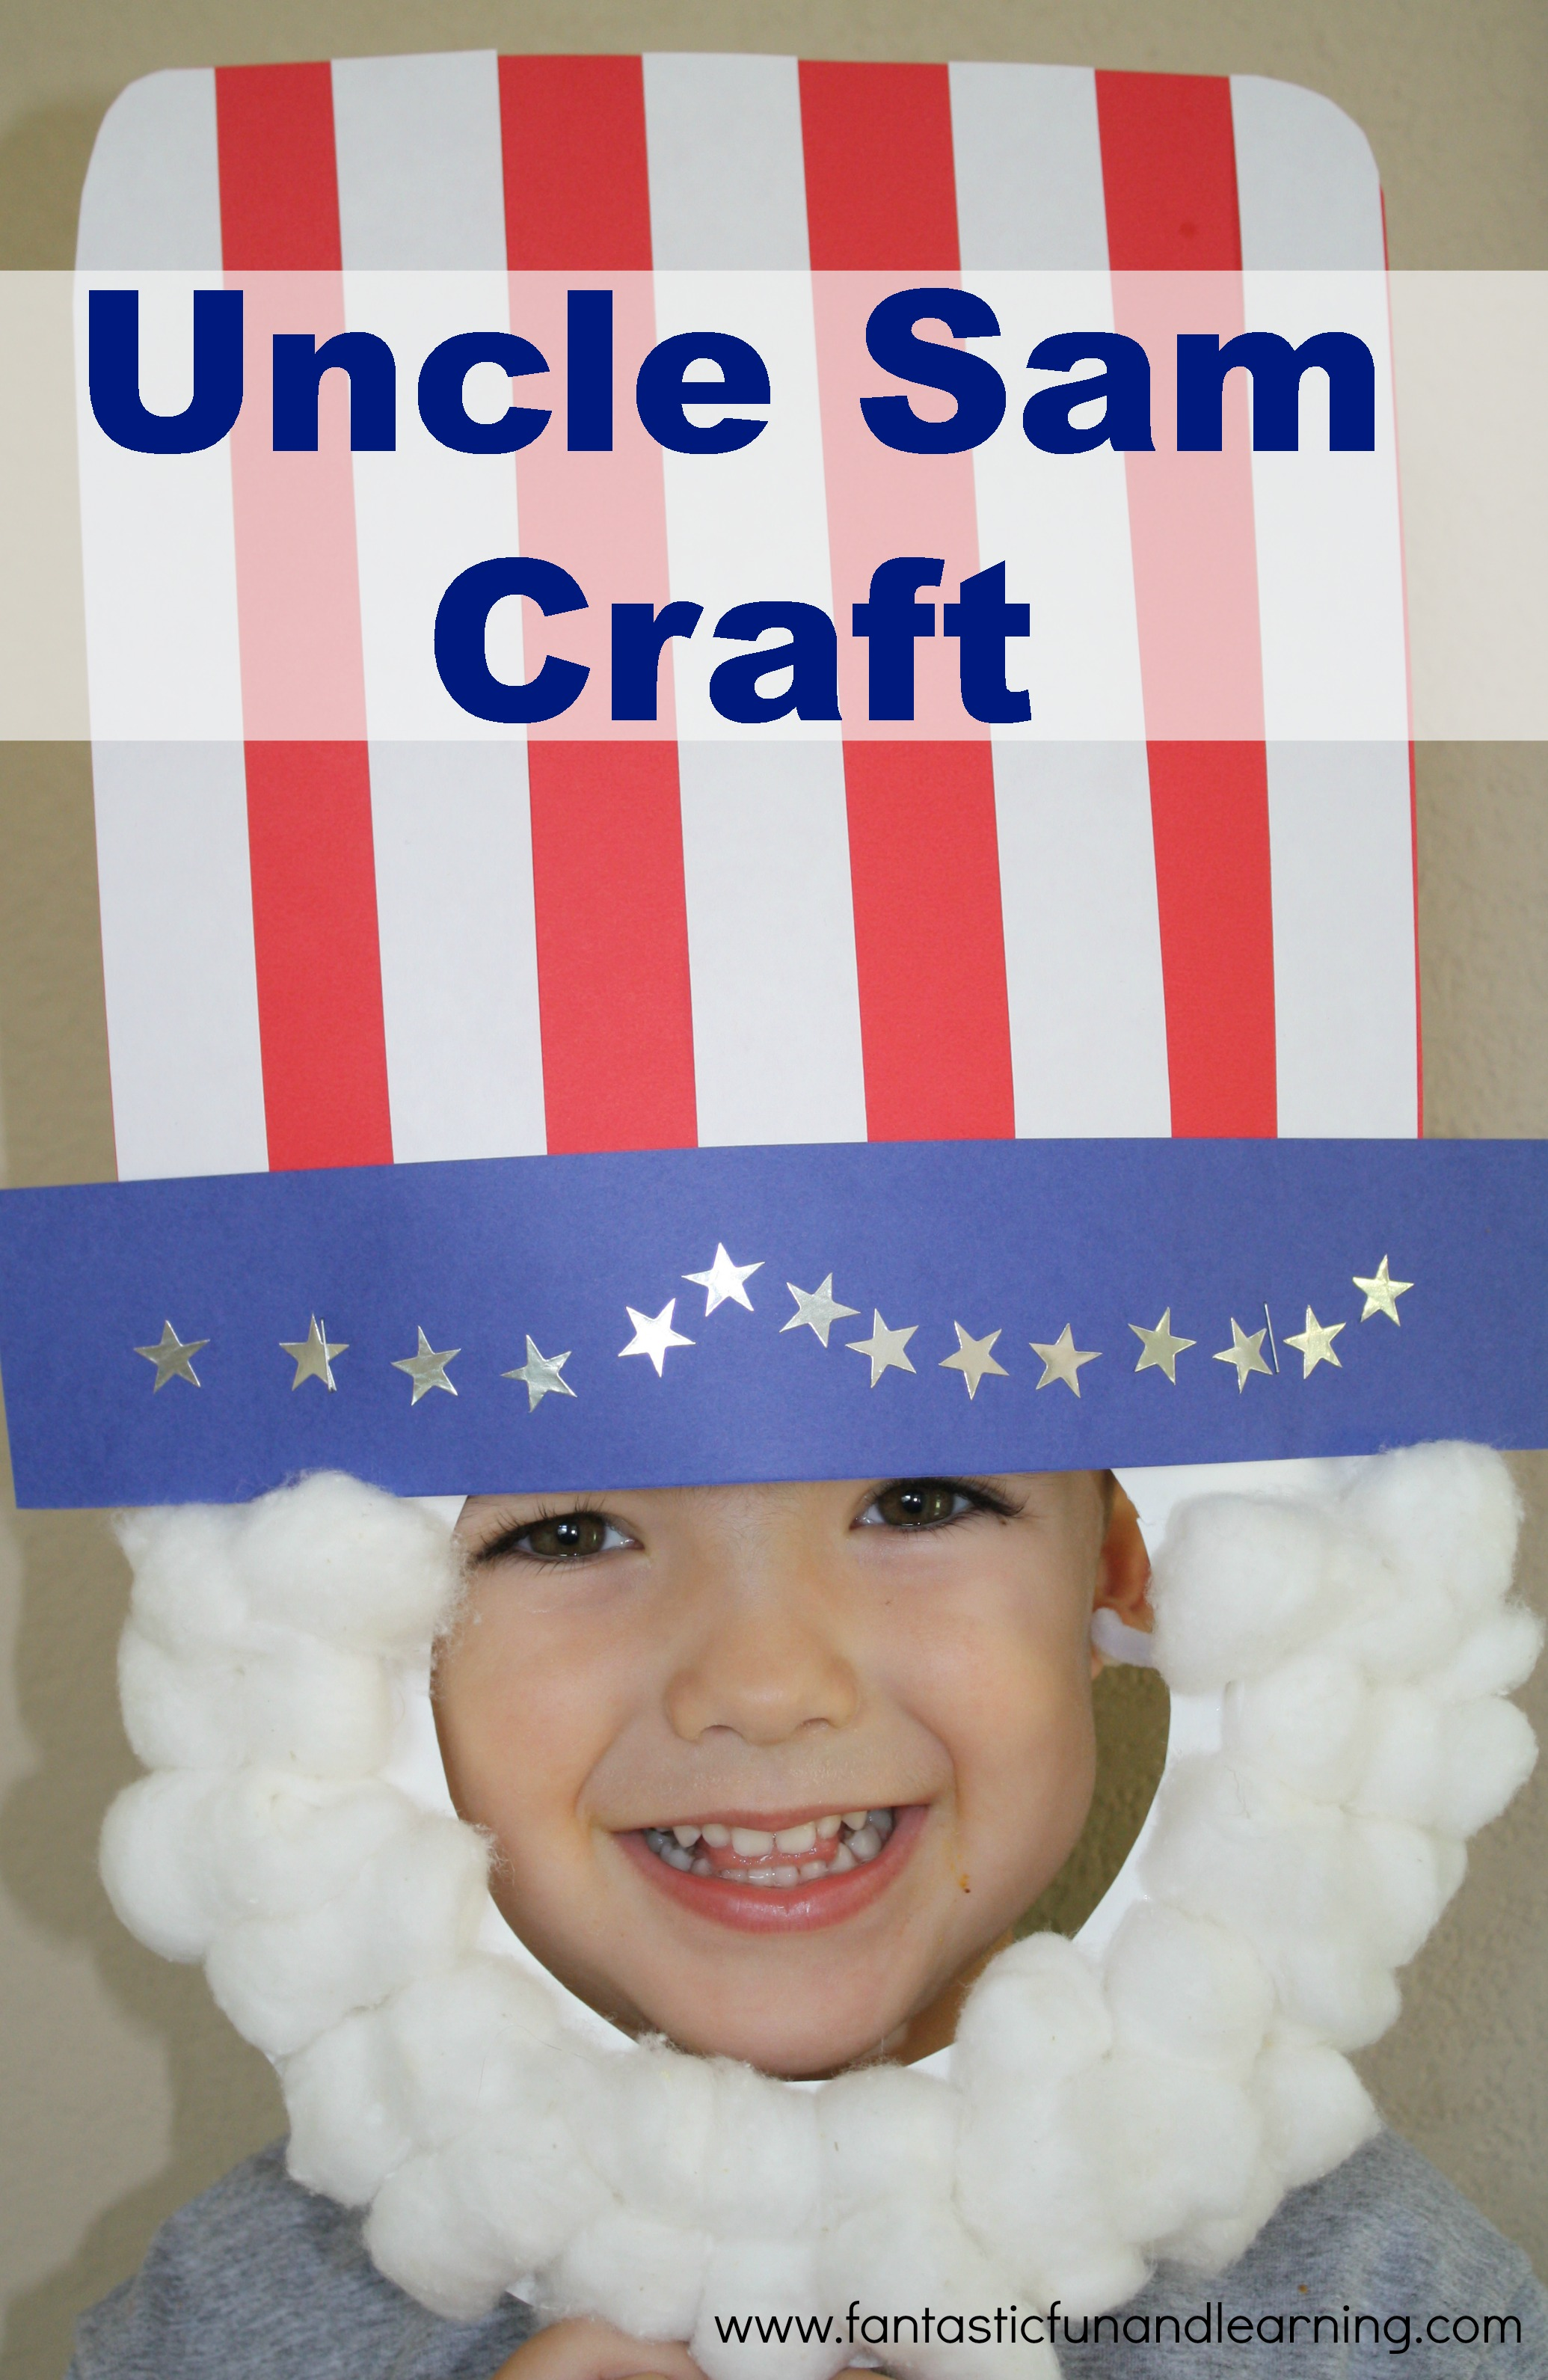 Uncle Sam Craft